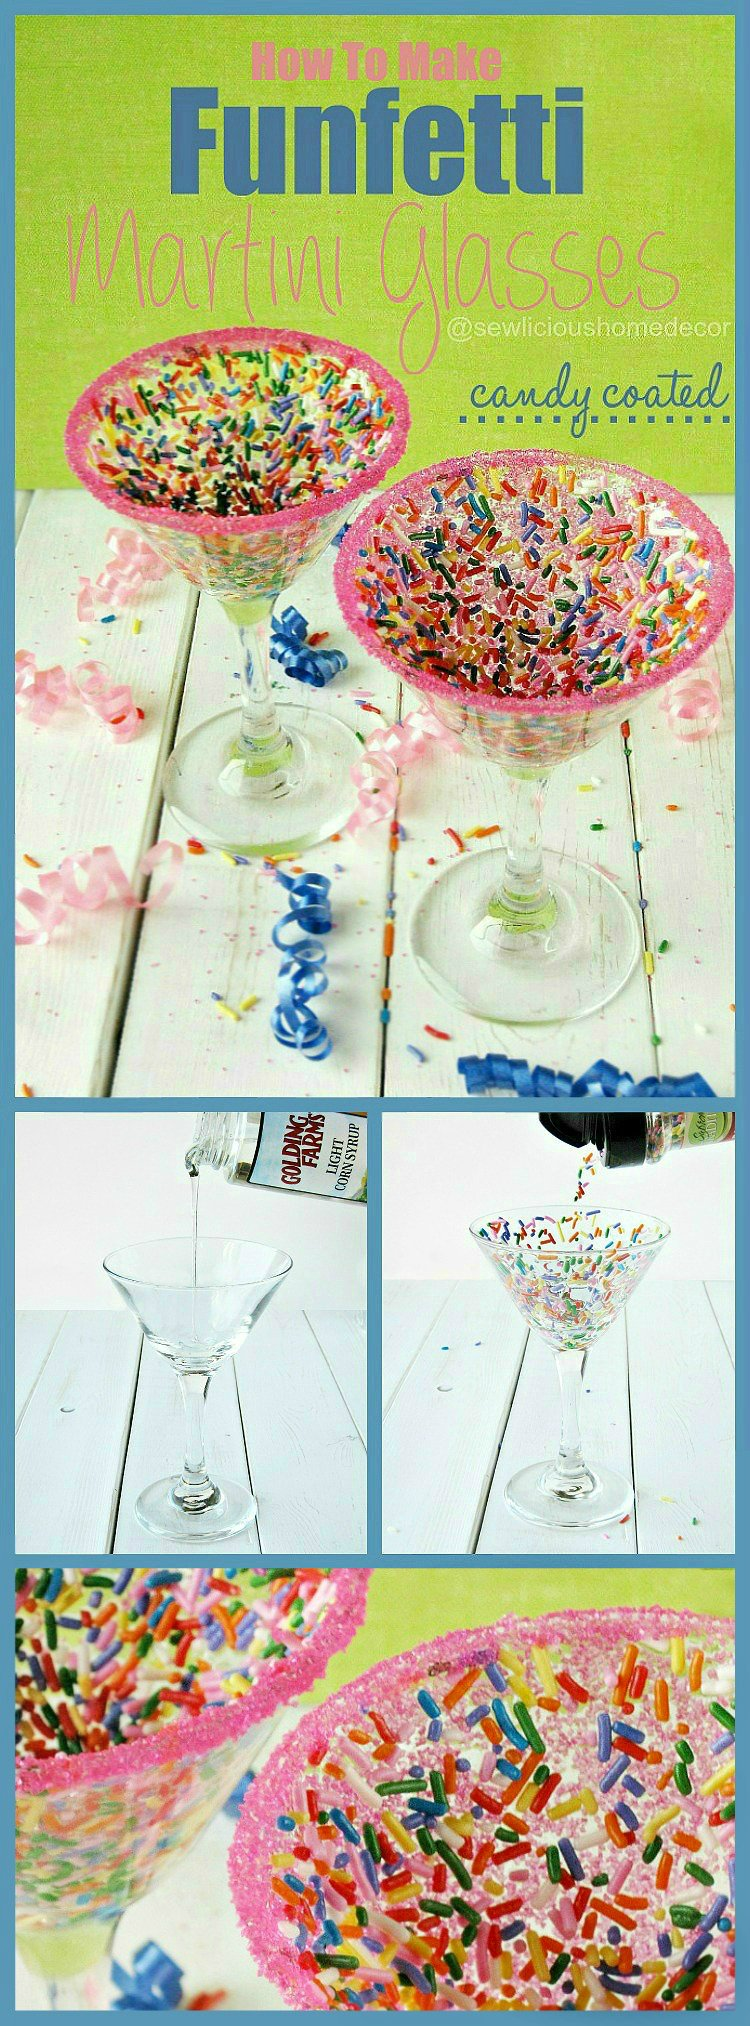 How To Make Funfetti Martini Glasses Candy Coated sewlicioushomedecor.com